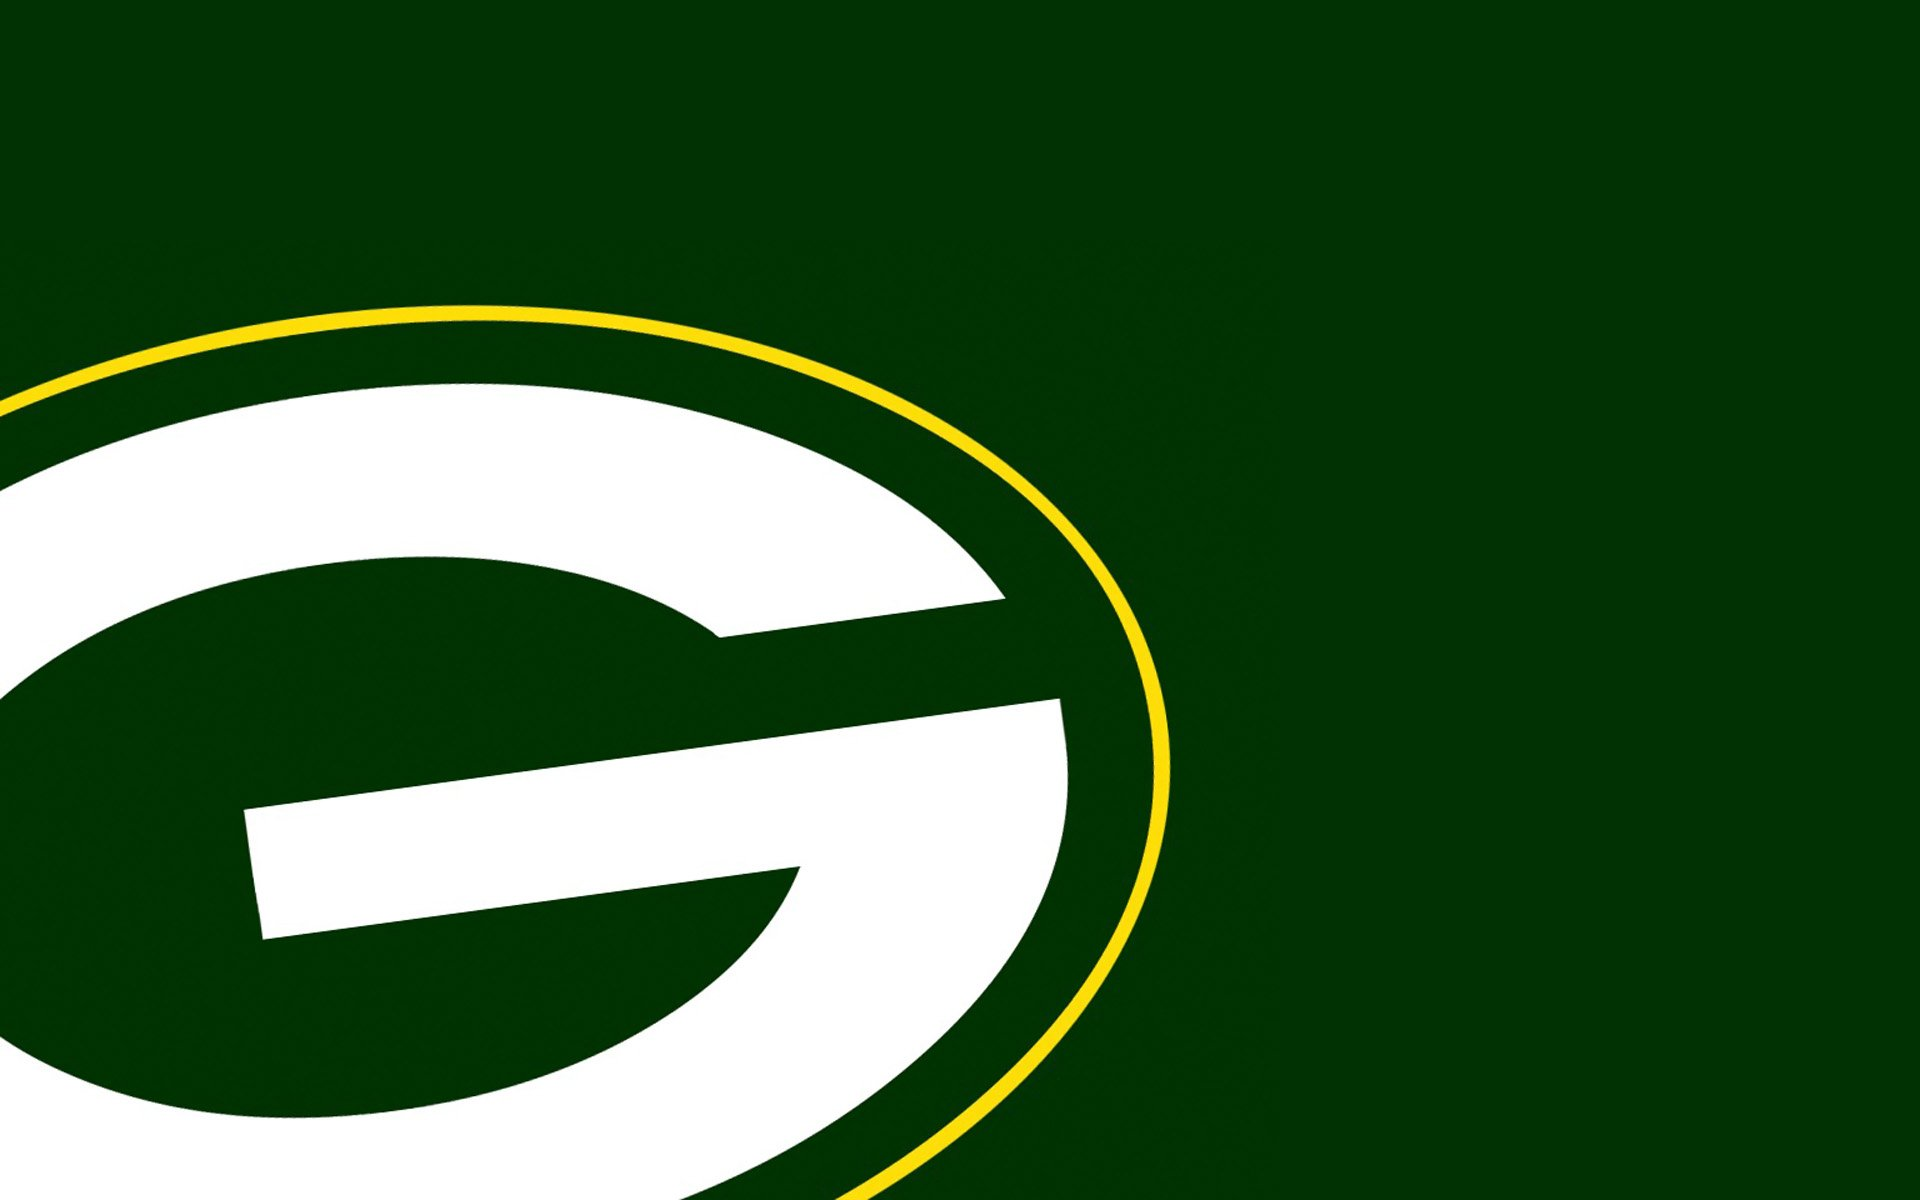 Green Bay Packers Hd Wallpaper Background Image 1920x1200 Id